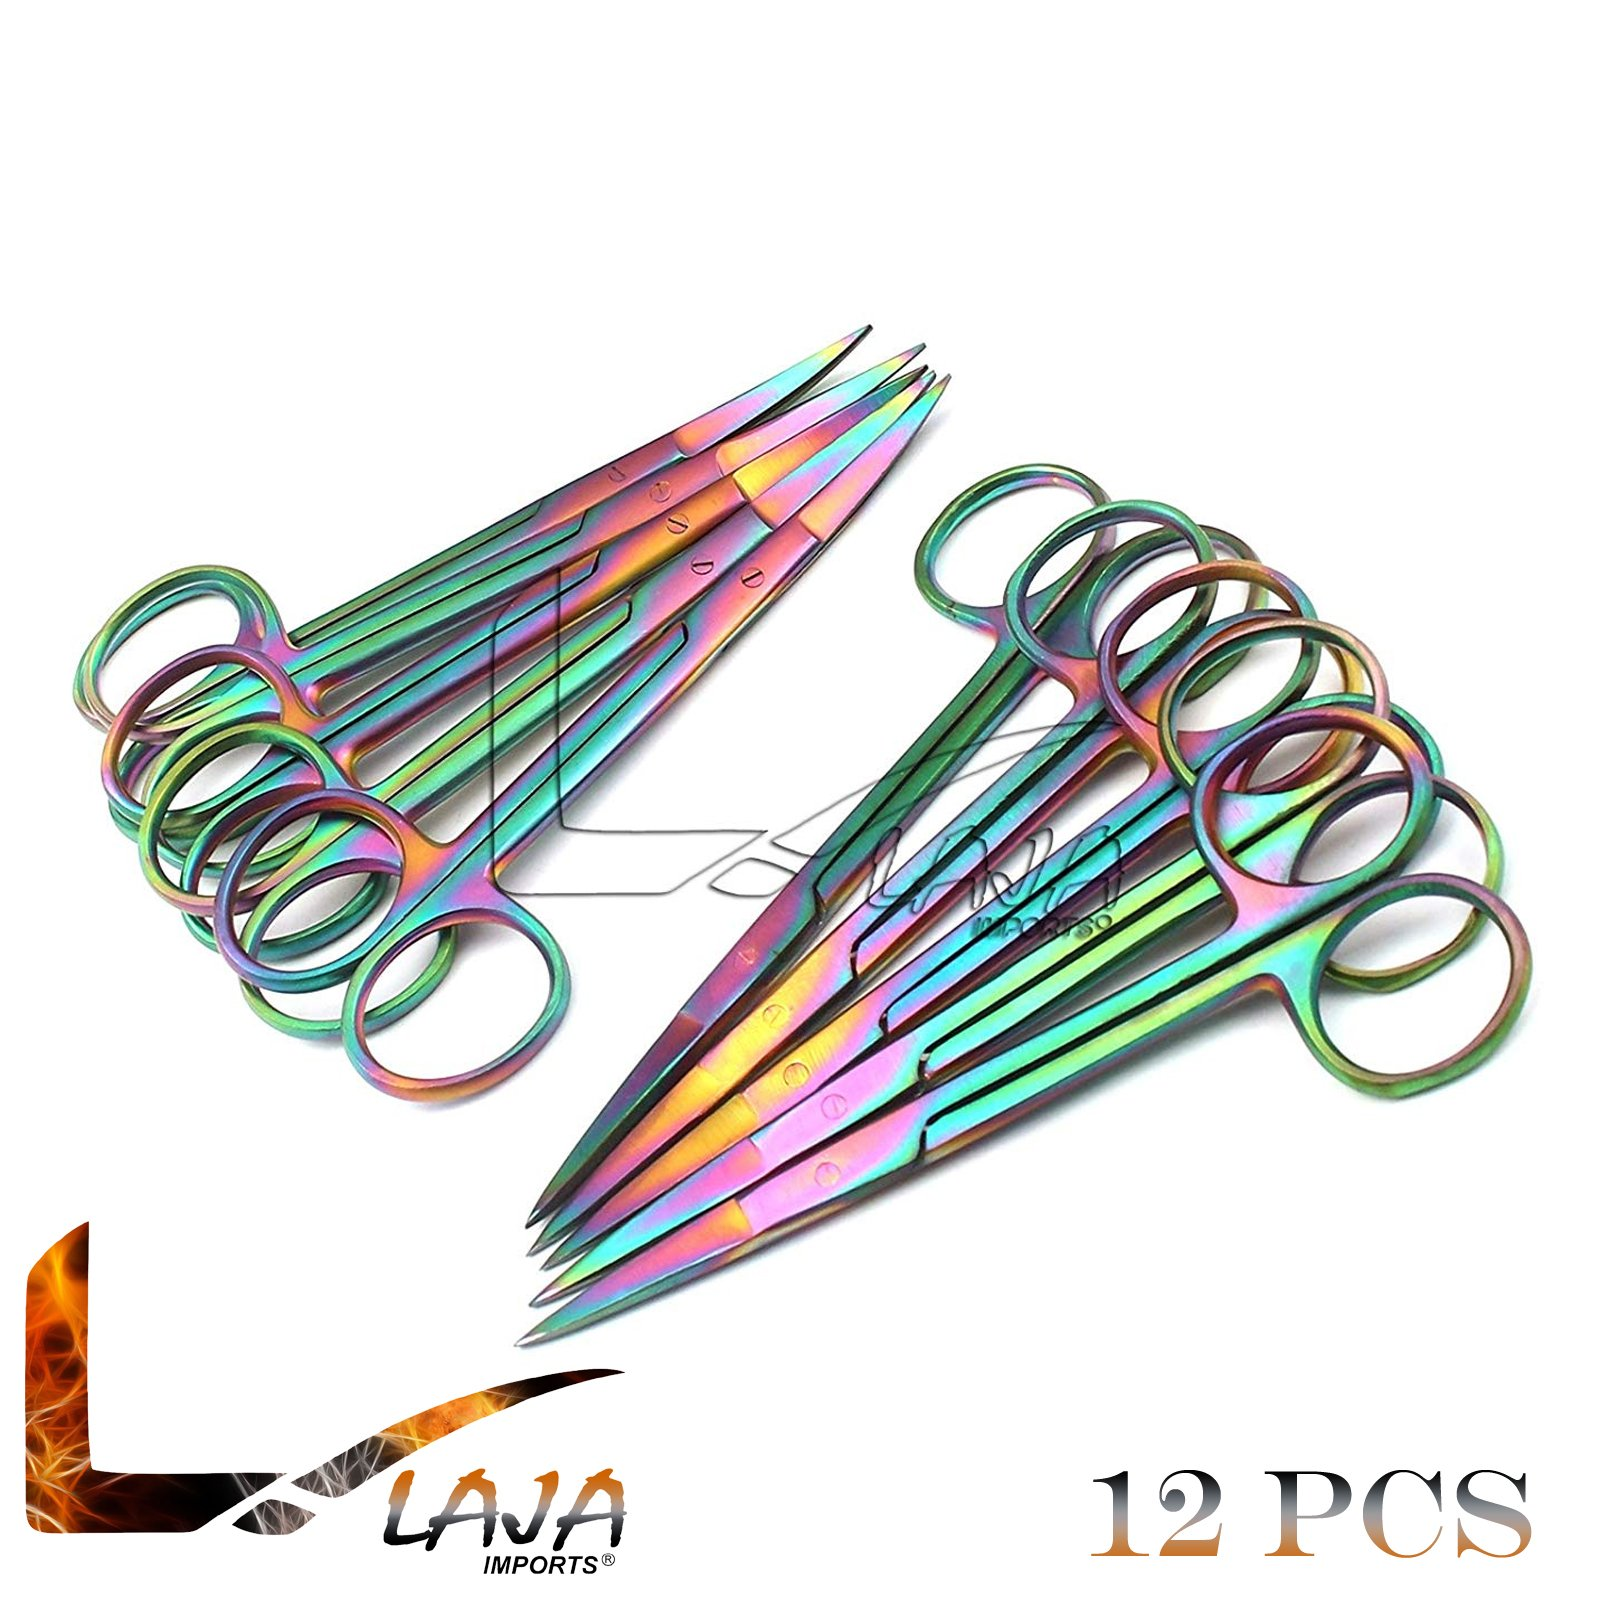 LAJA Imports Set of 12 Multi Titanium Color Rainbow Iris Scissors 4.5'' Straight & Curved Stainless Steel